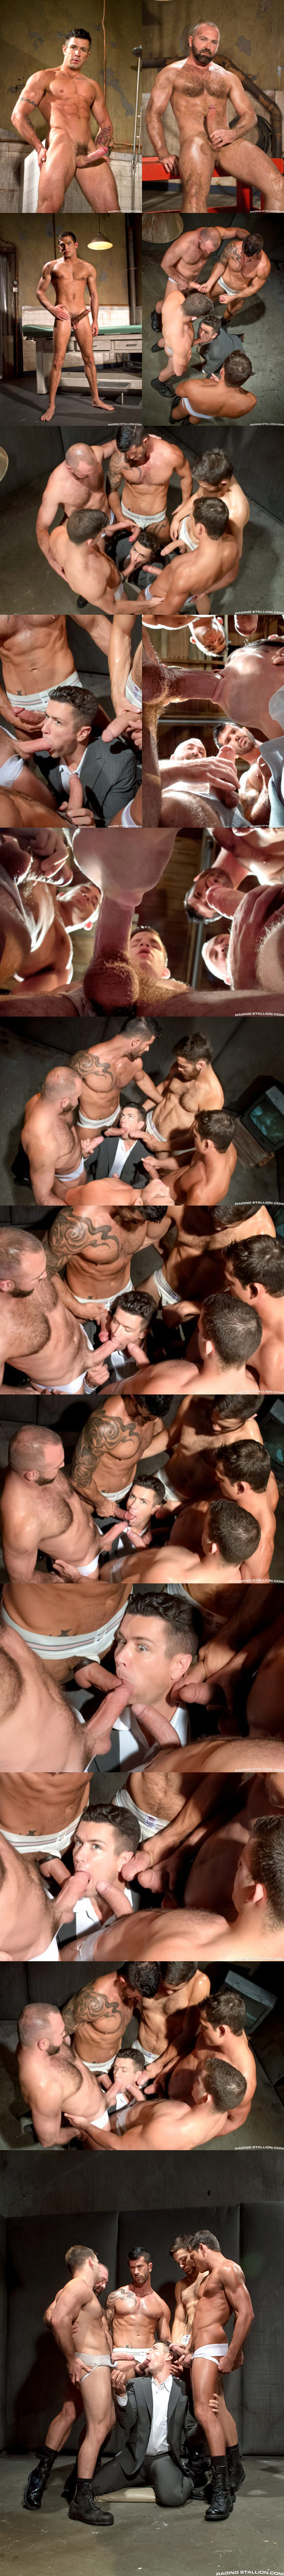 raging-stallion-hole-trenton-ducati-adam-killian-tommy-defendi-luke-milan-josh-west-angel-rock